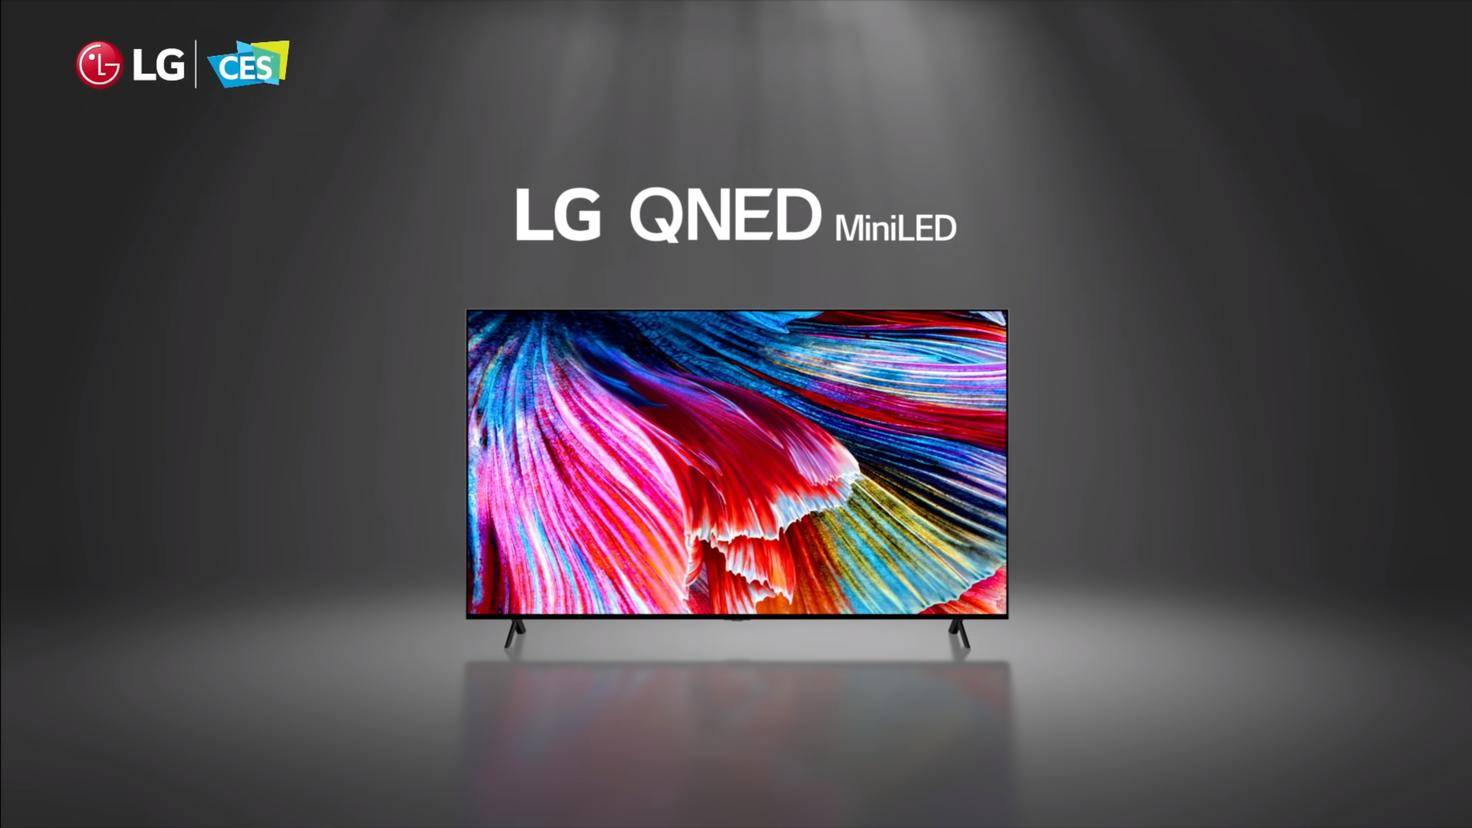 lg-qned-miniled-tv-fernseher